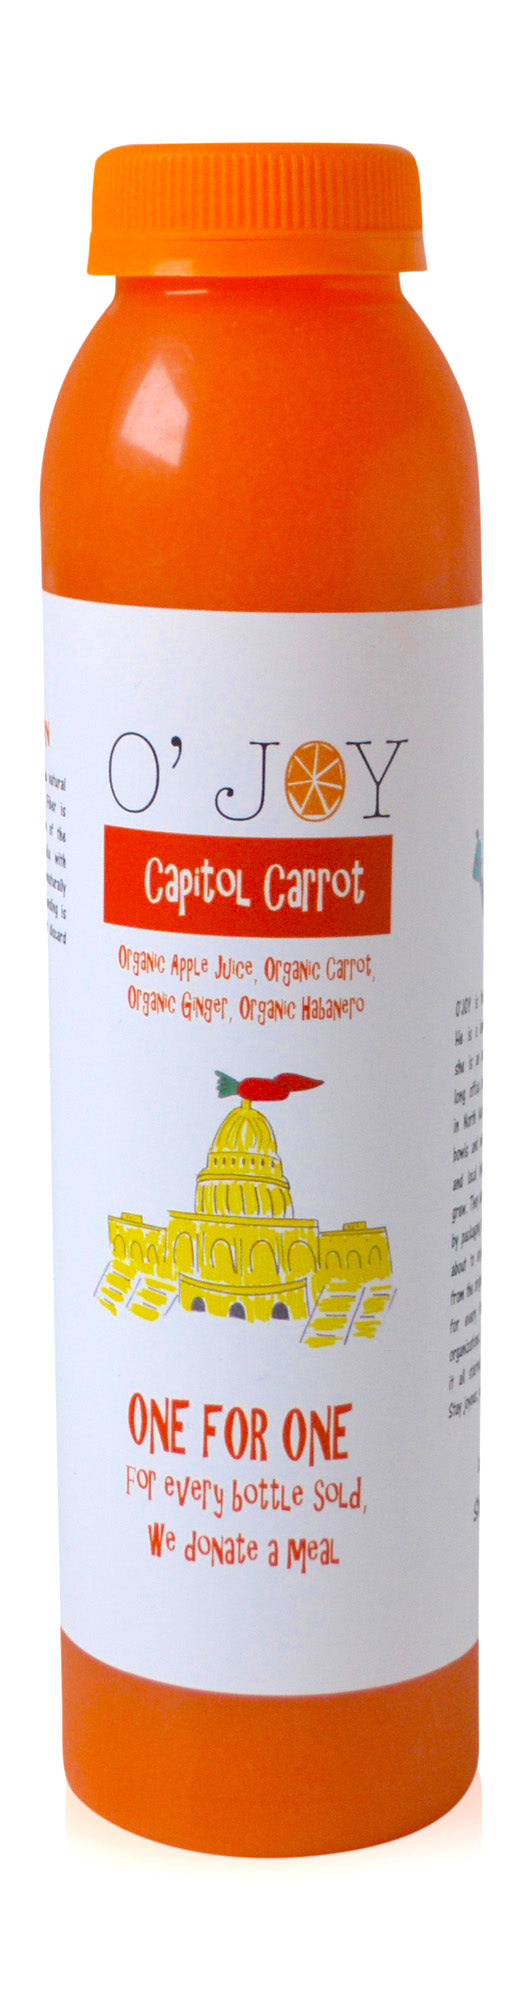 Capitol Carrot